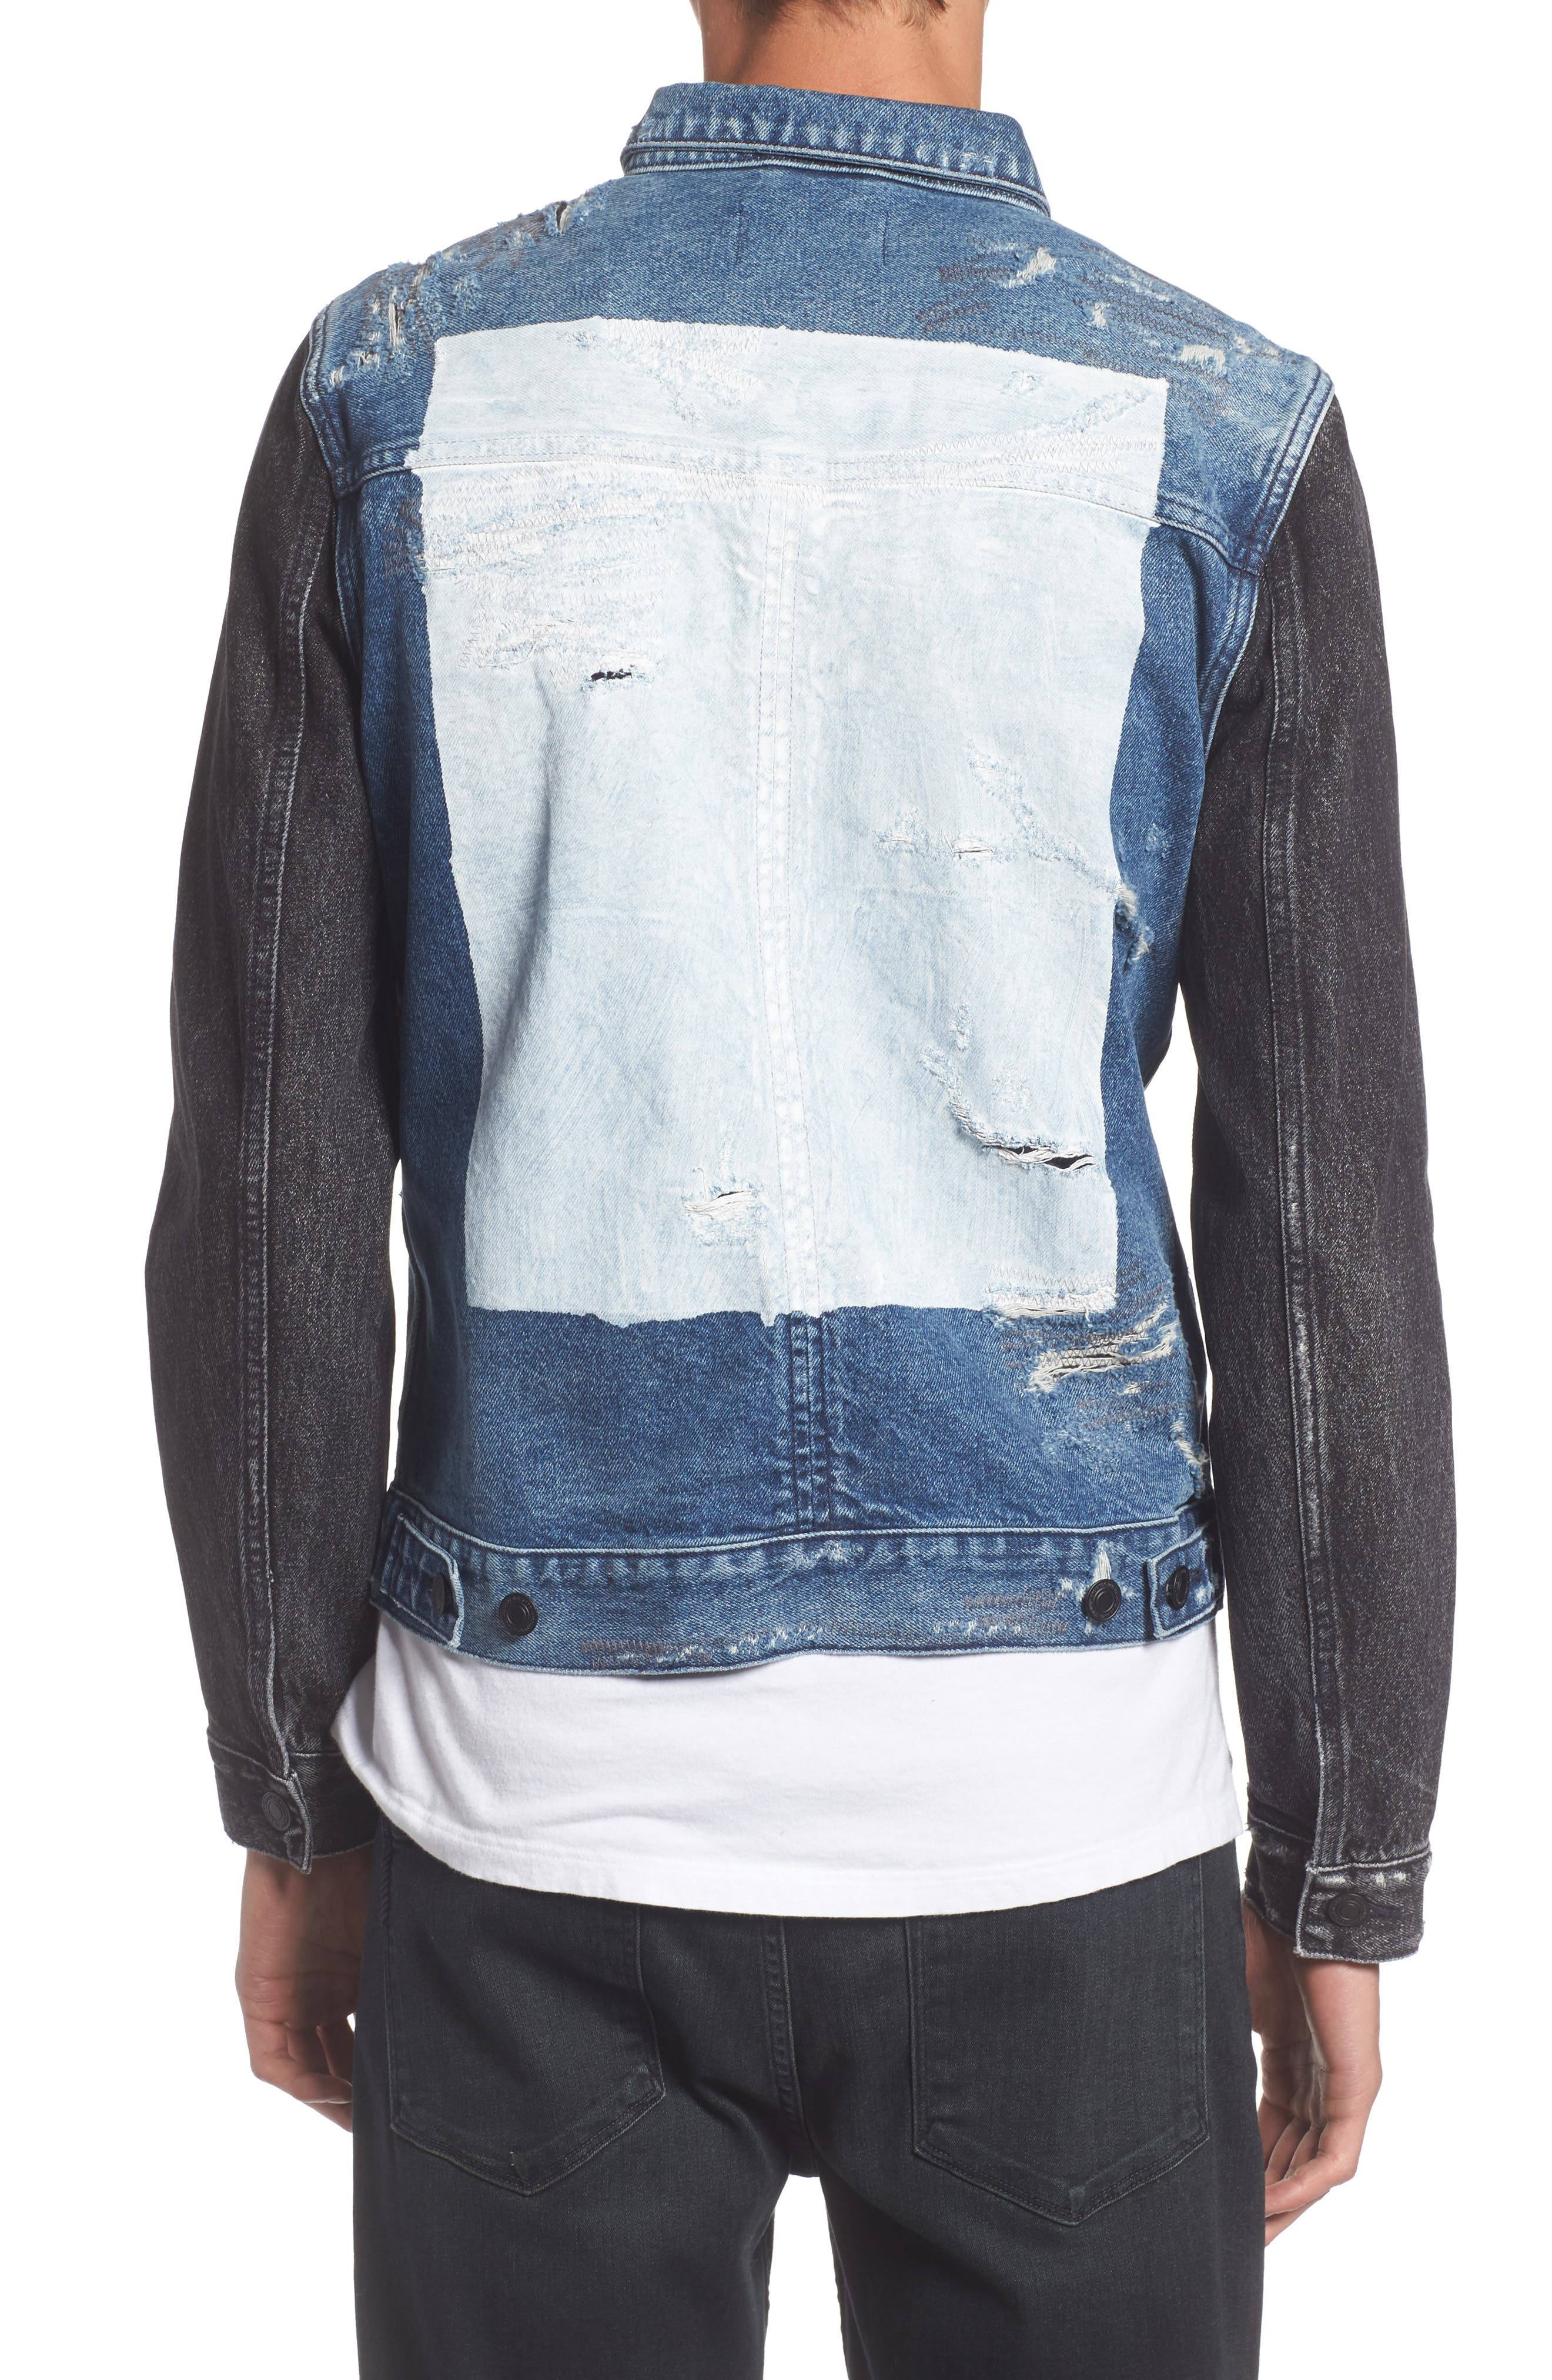 Trash Denim Jacket,                             Alternate thumbnail 2, color,                             460